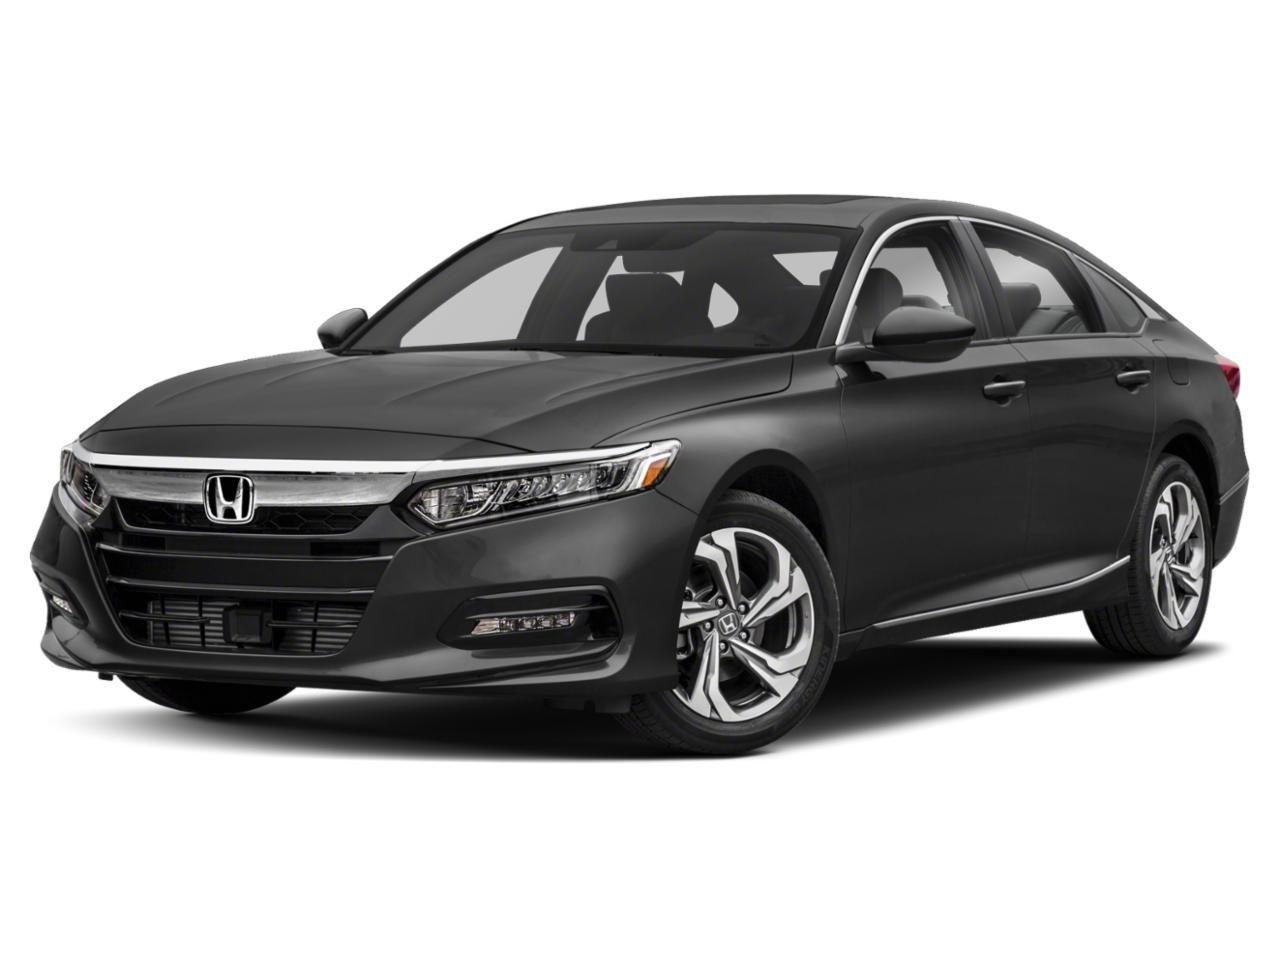 2018 Honda Accord Sedan Vehicle Photo in Austin, TX 78759